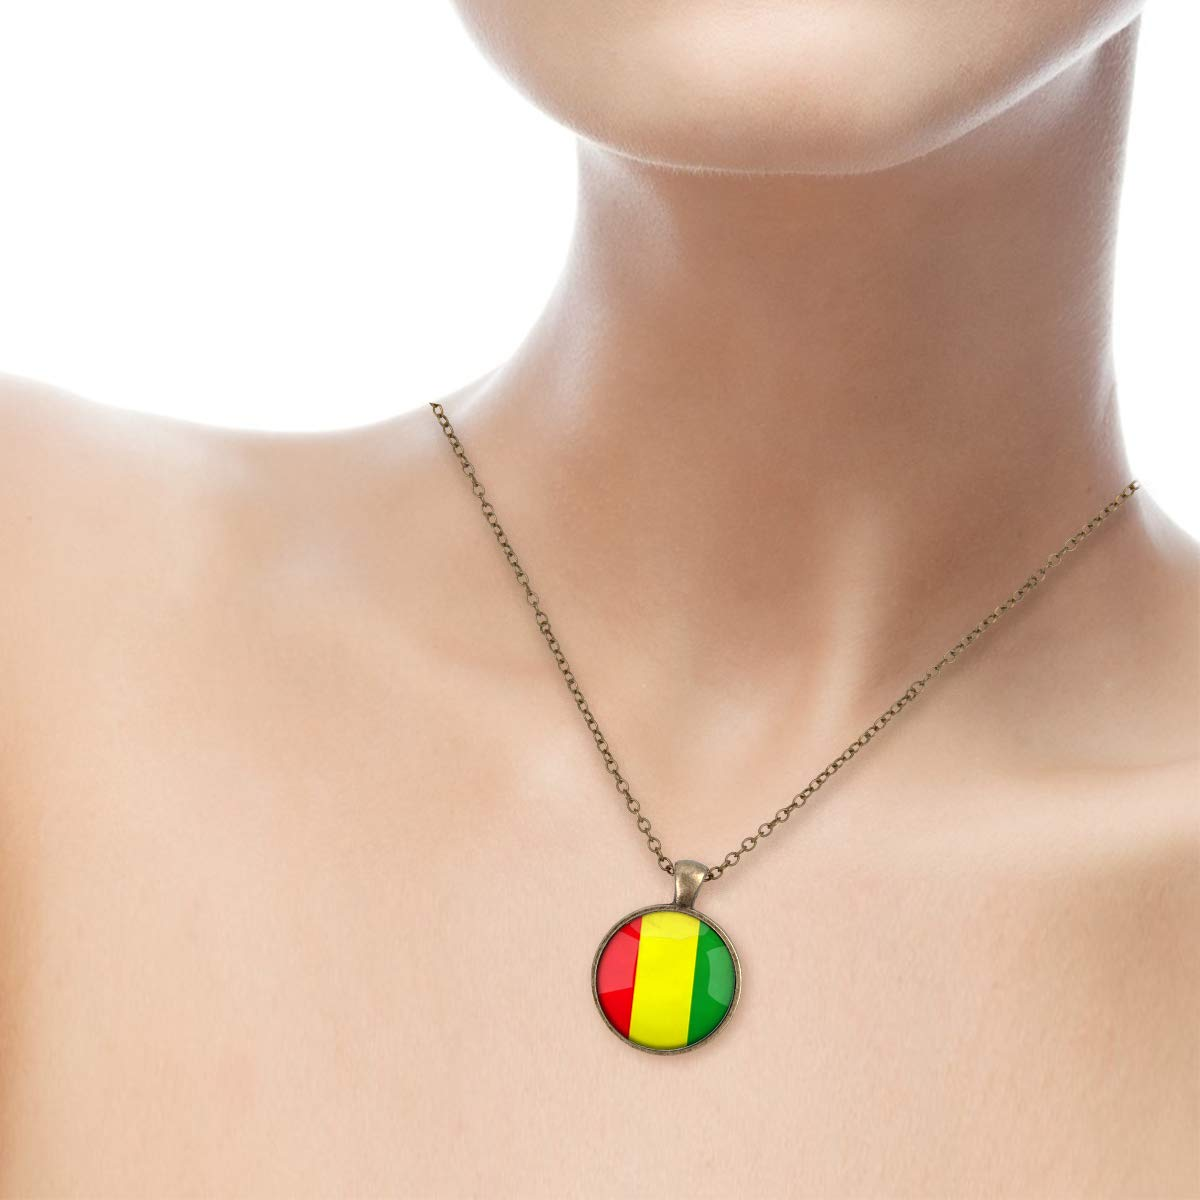 Lightrain The Republic of Guinea National Flag Pendant Necklace Vintage Bronze Chain Statement Necklace Handmade Jewelry Gifts